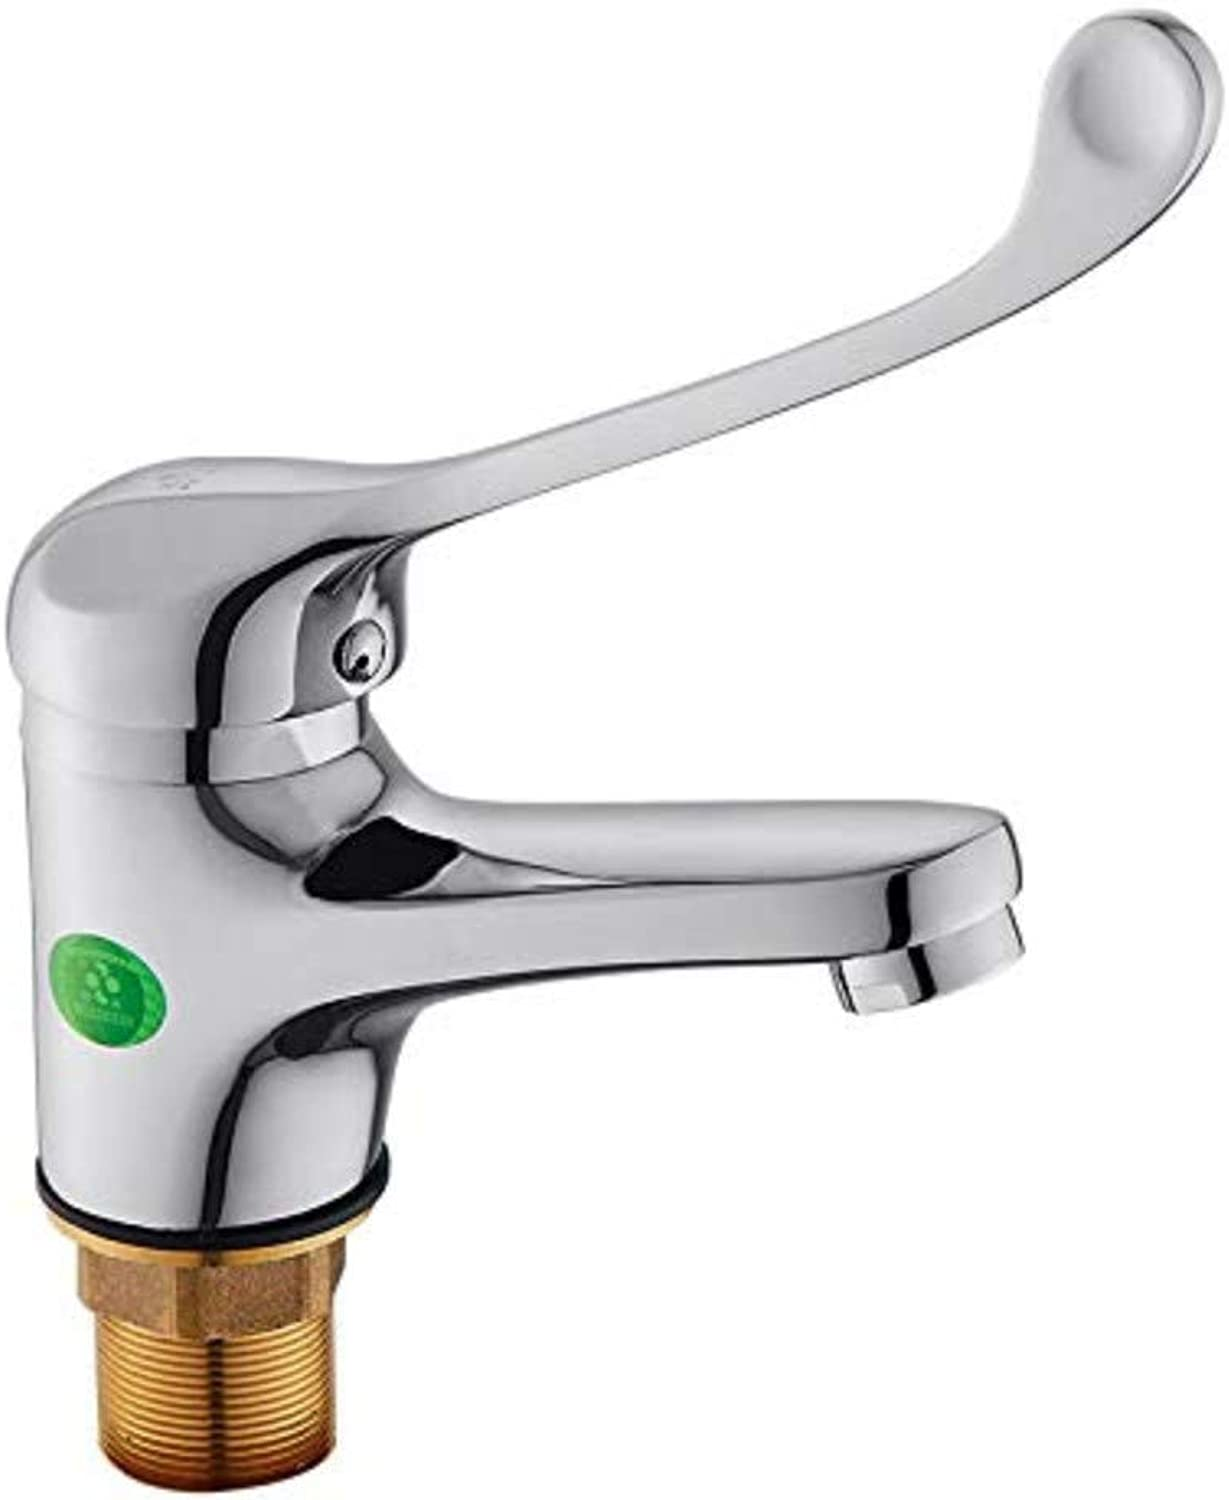 Chrome-Plated Brass Bathroom Toilet Faucet Long Handle Single Hole Hot and Cold Water Faucet Wash Basin Faucet